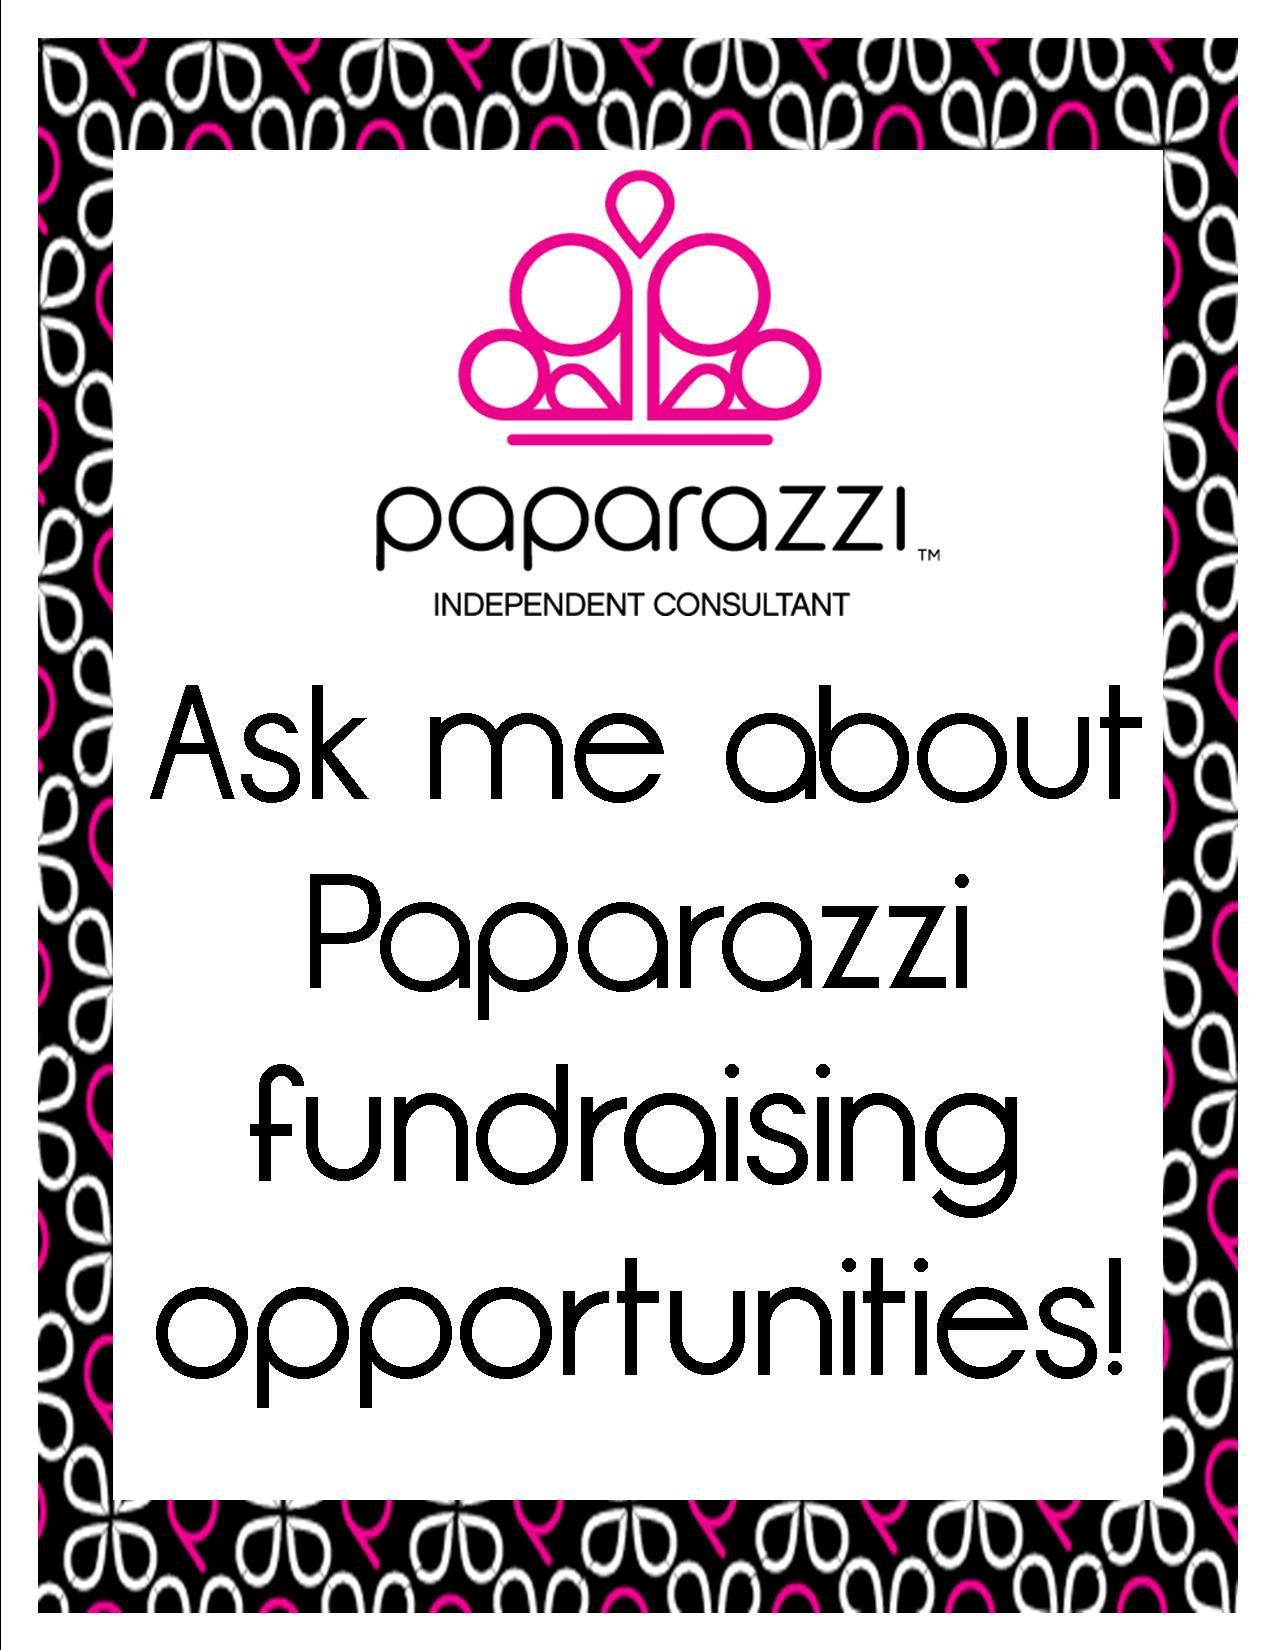 ask me about fundraisers mission trips habitat for humanity business